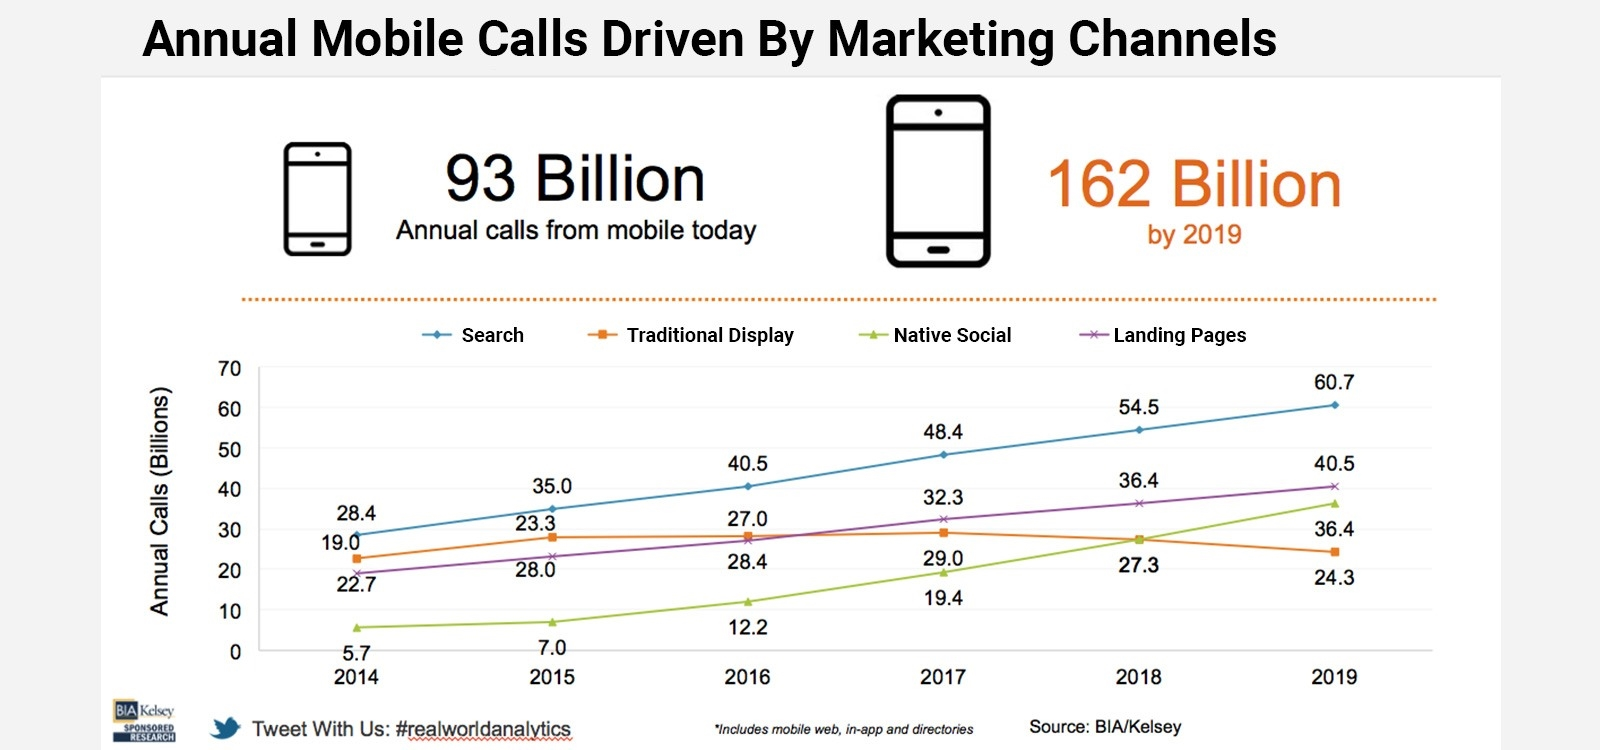 Annual Mobile Calls Driven by Marketing Channels